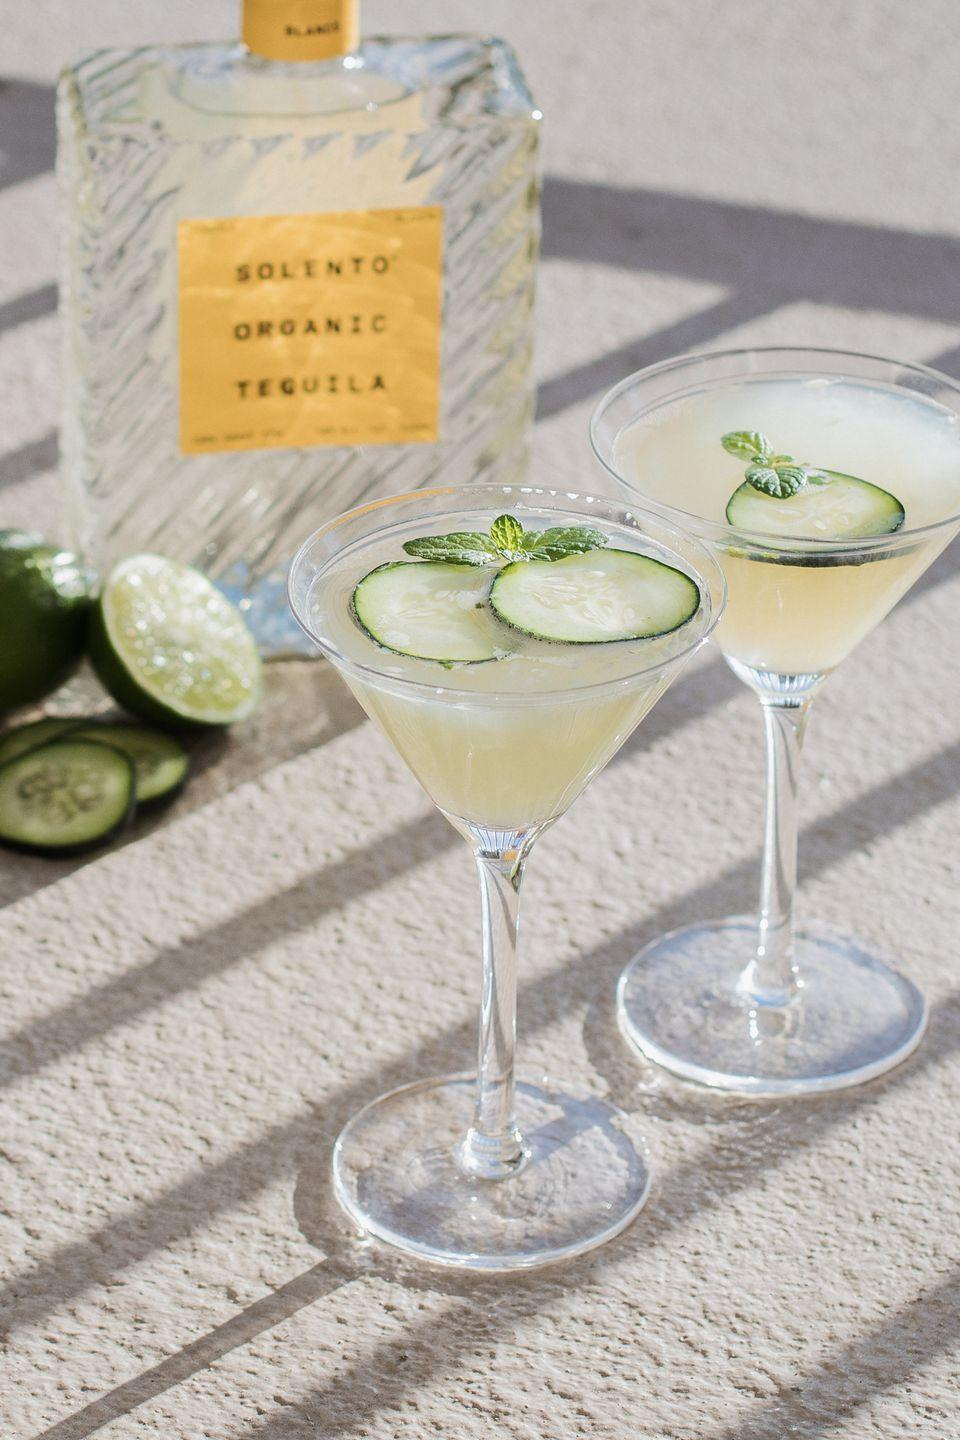 """<p>This refreshing tequila drink reminds us of sunny spa days at our favorite weekend retreat and is an excellent option for serving at your next outdoor garden party. </p><p><strong>Ingredients:</strong></p><p>4 mint leaves</p><p>4 cucumber slices</p><p>1/2 ounce agave syrup</p><p>2 ounces <a href=""""https://solentotequila.com/"""" rel=""""nofollow noopener"""" target=""""_blank"""" data-ylk=""""slk:Solento Blanco"""" class=""""link rapid-noclick-resp"""">Solento Blanco</a> tequila</p><p>3/4 ounce lime juice</p><p>Ice</p><p><strong>Directions:</strong></p><p>Gently muddle mint leaves, cucumber slices, and agave syrup in a cocktail shaker. Add tequila, lime juice, and ice, then shake and strain into a martini glass. Garnish with extra mint leaves and cucumber slices. </p>"""